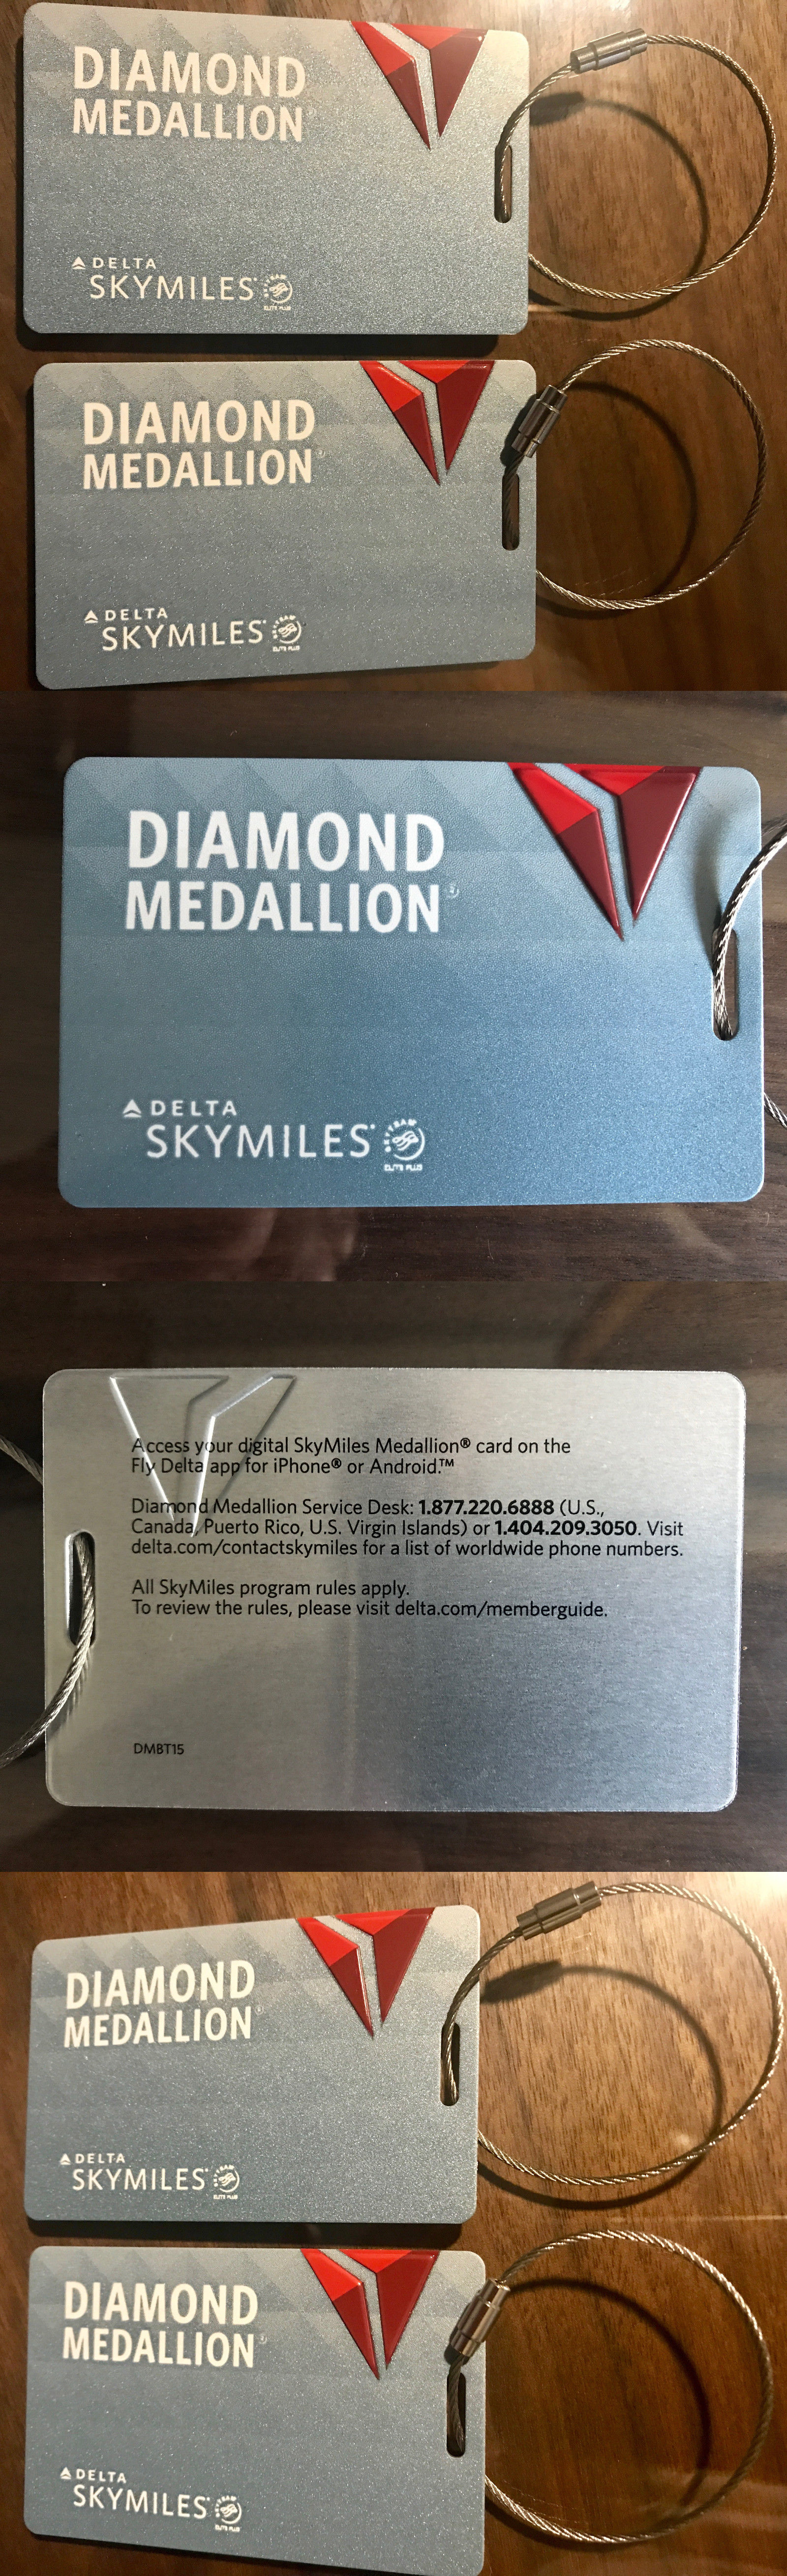 Luggage Tags 164800 New Delta Airlines Metal Diamond Medallion Tag With Loop It Now Only 48 On Ebay Pinterest